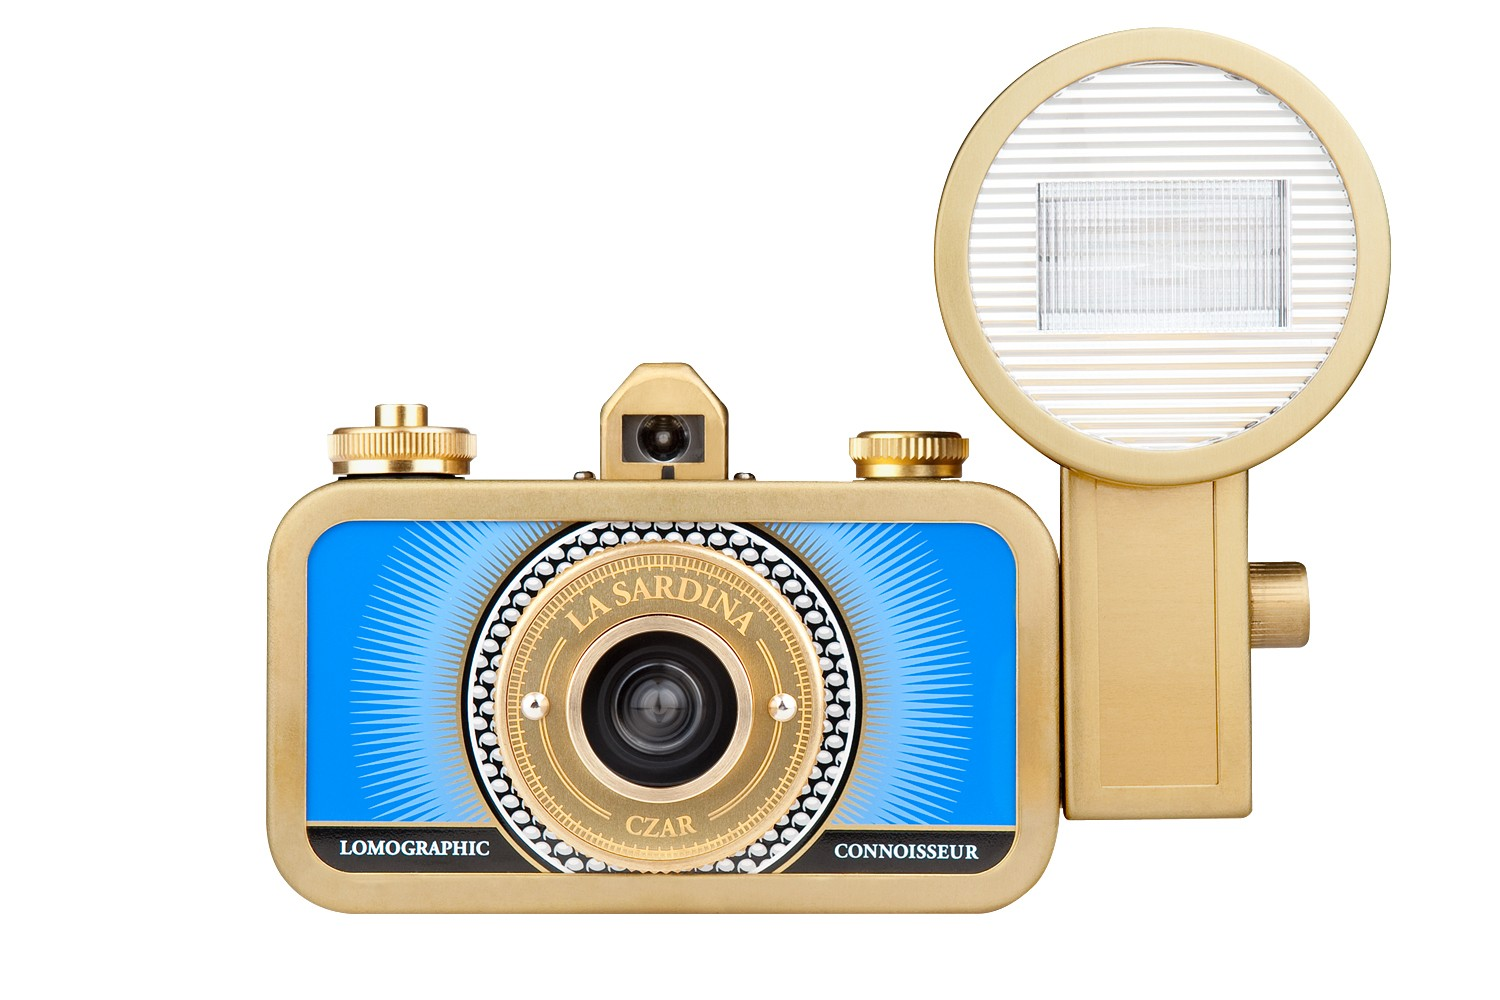 La Sardina and Flash Czar